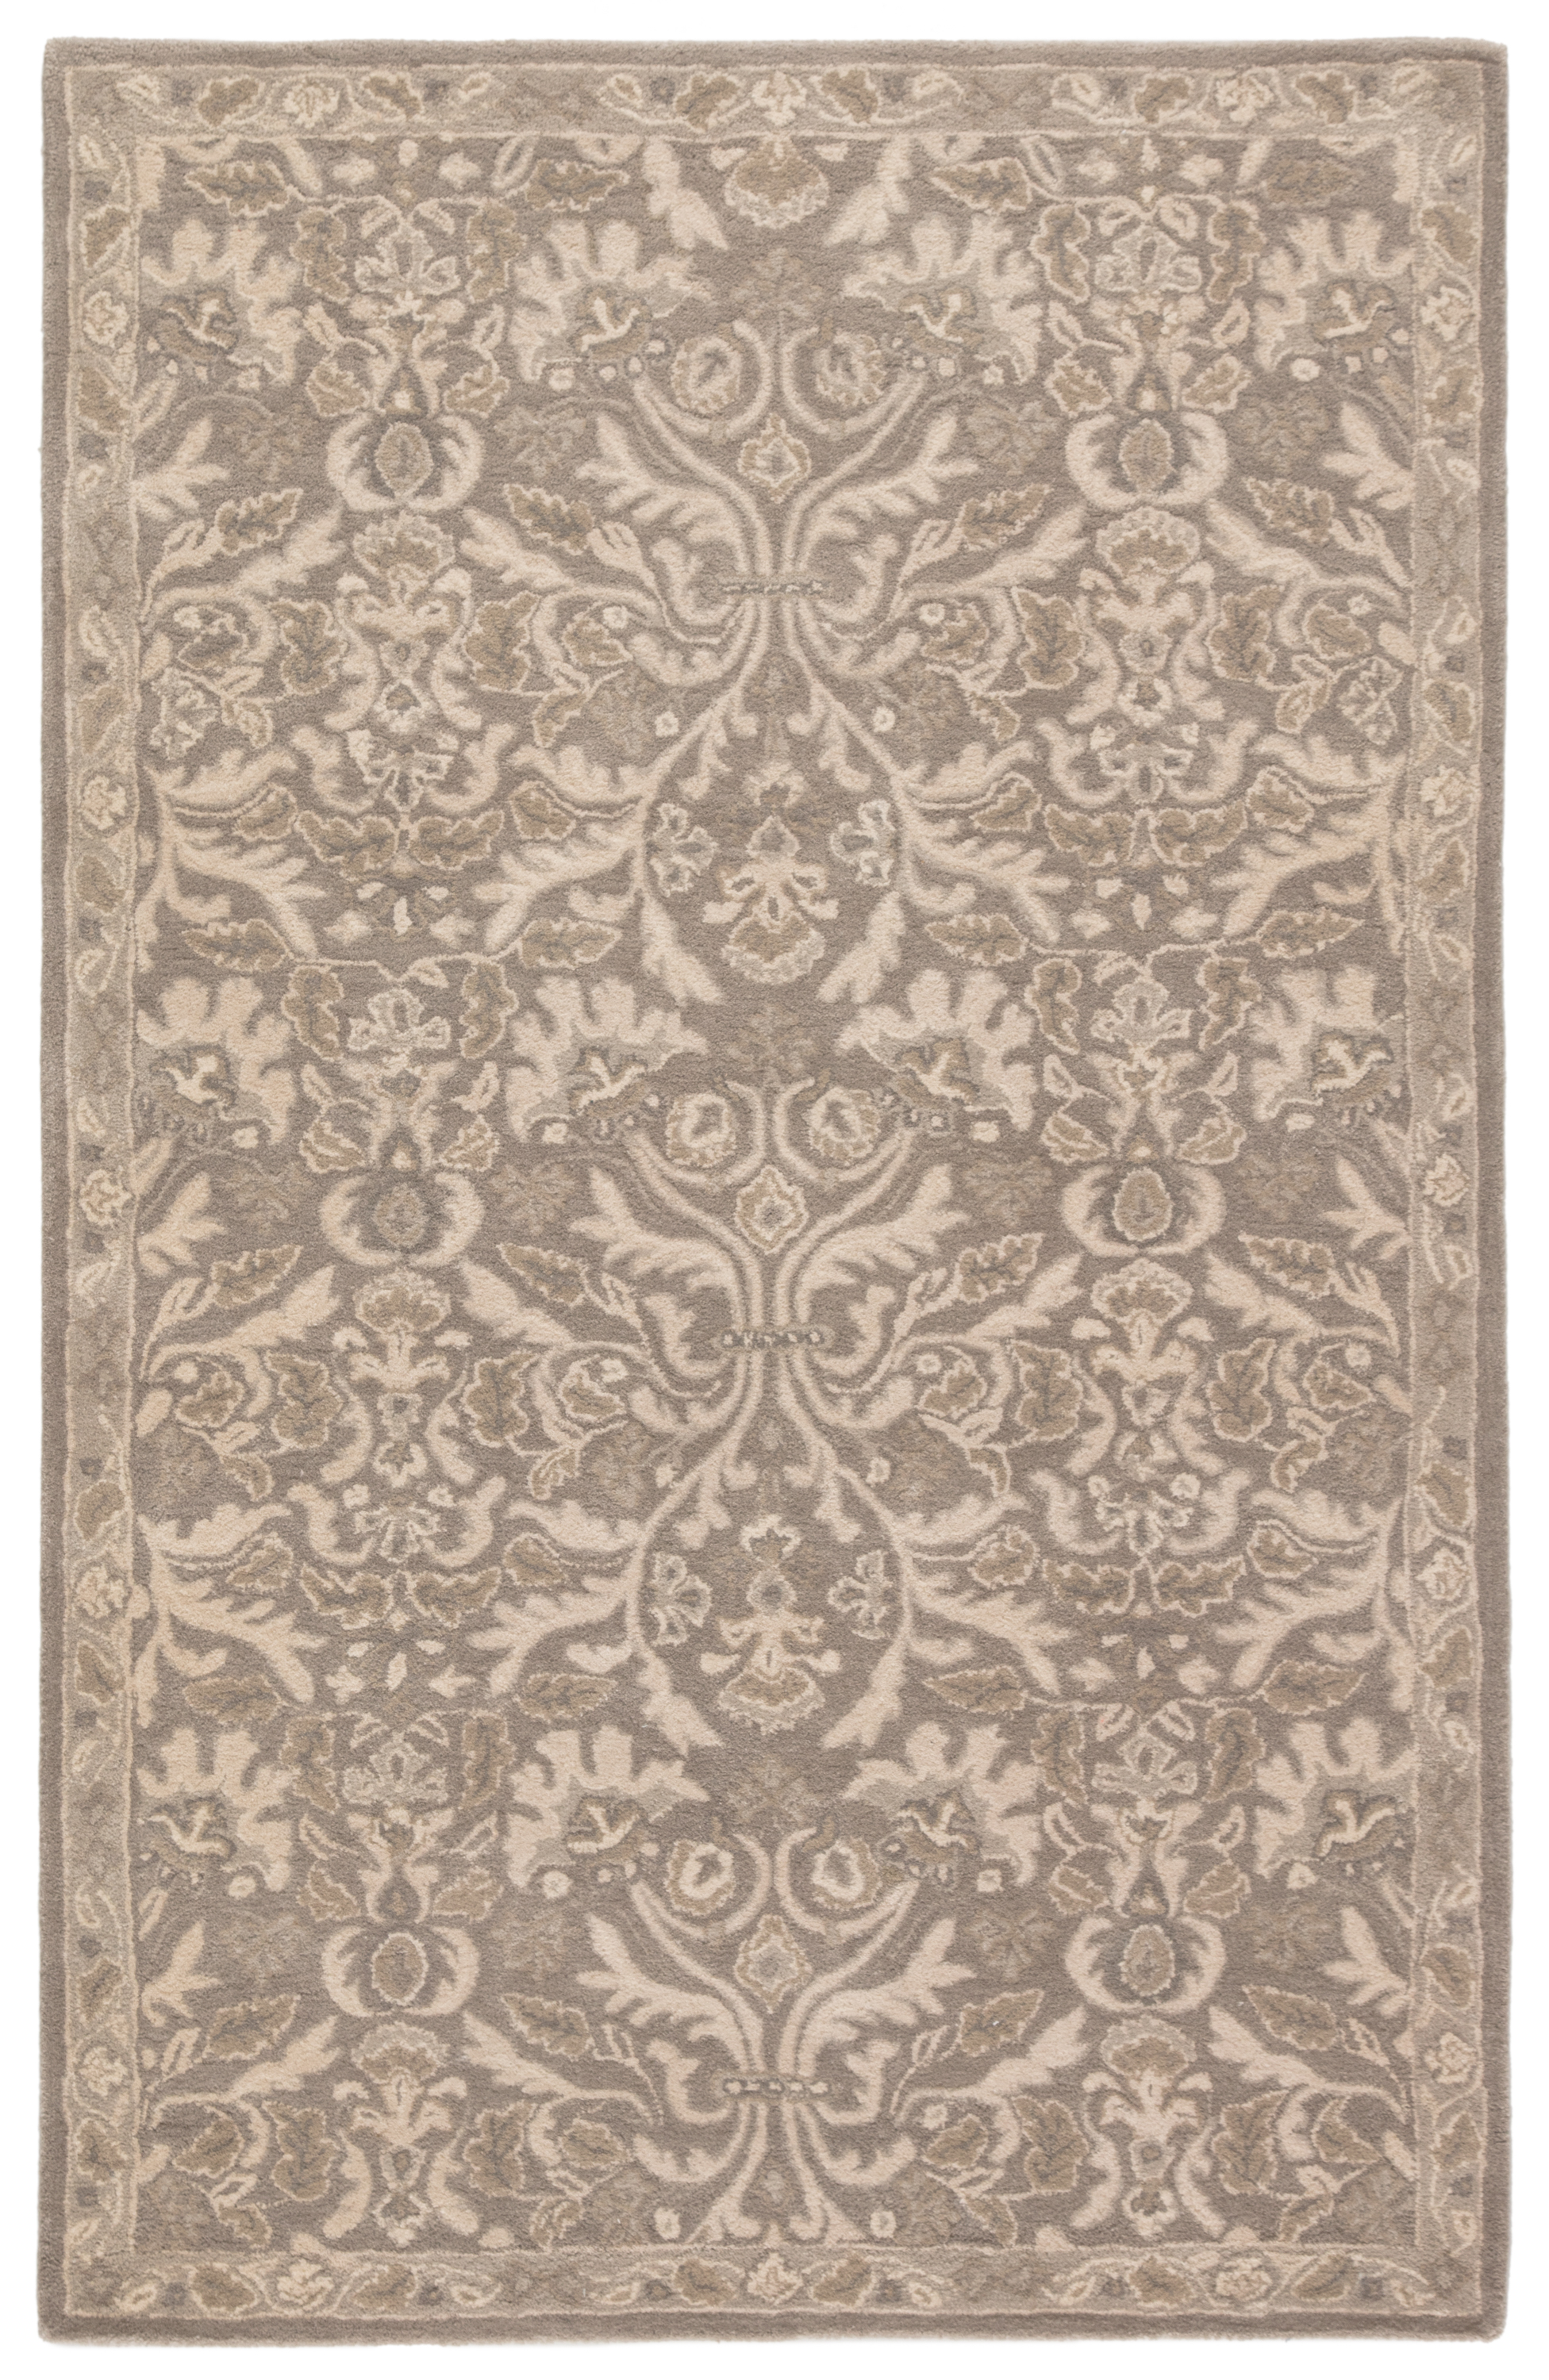 Jaipur Poeme PM121 Neutral Gray